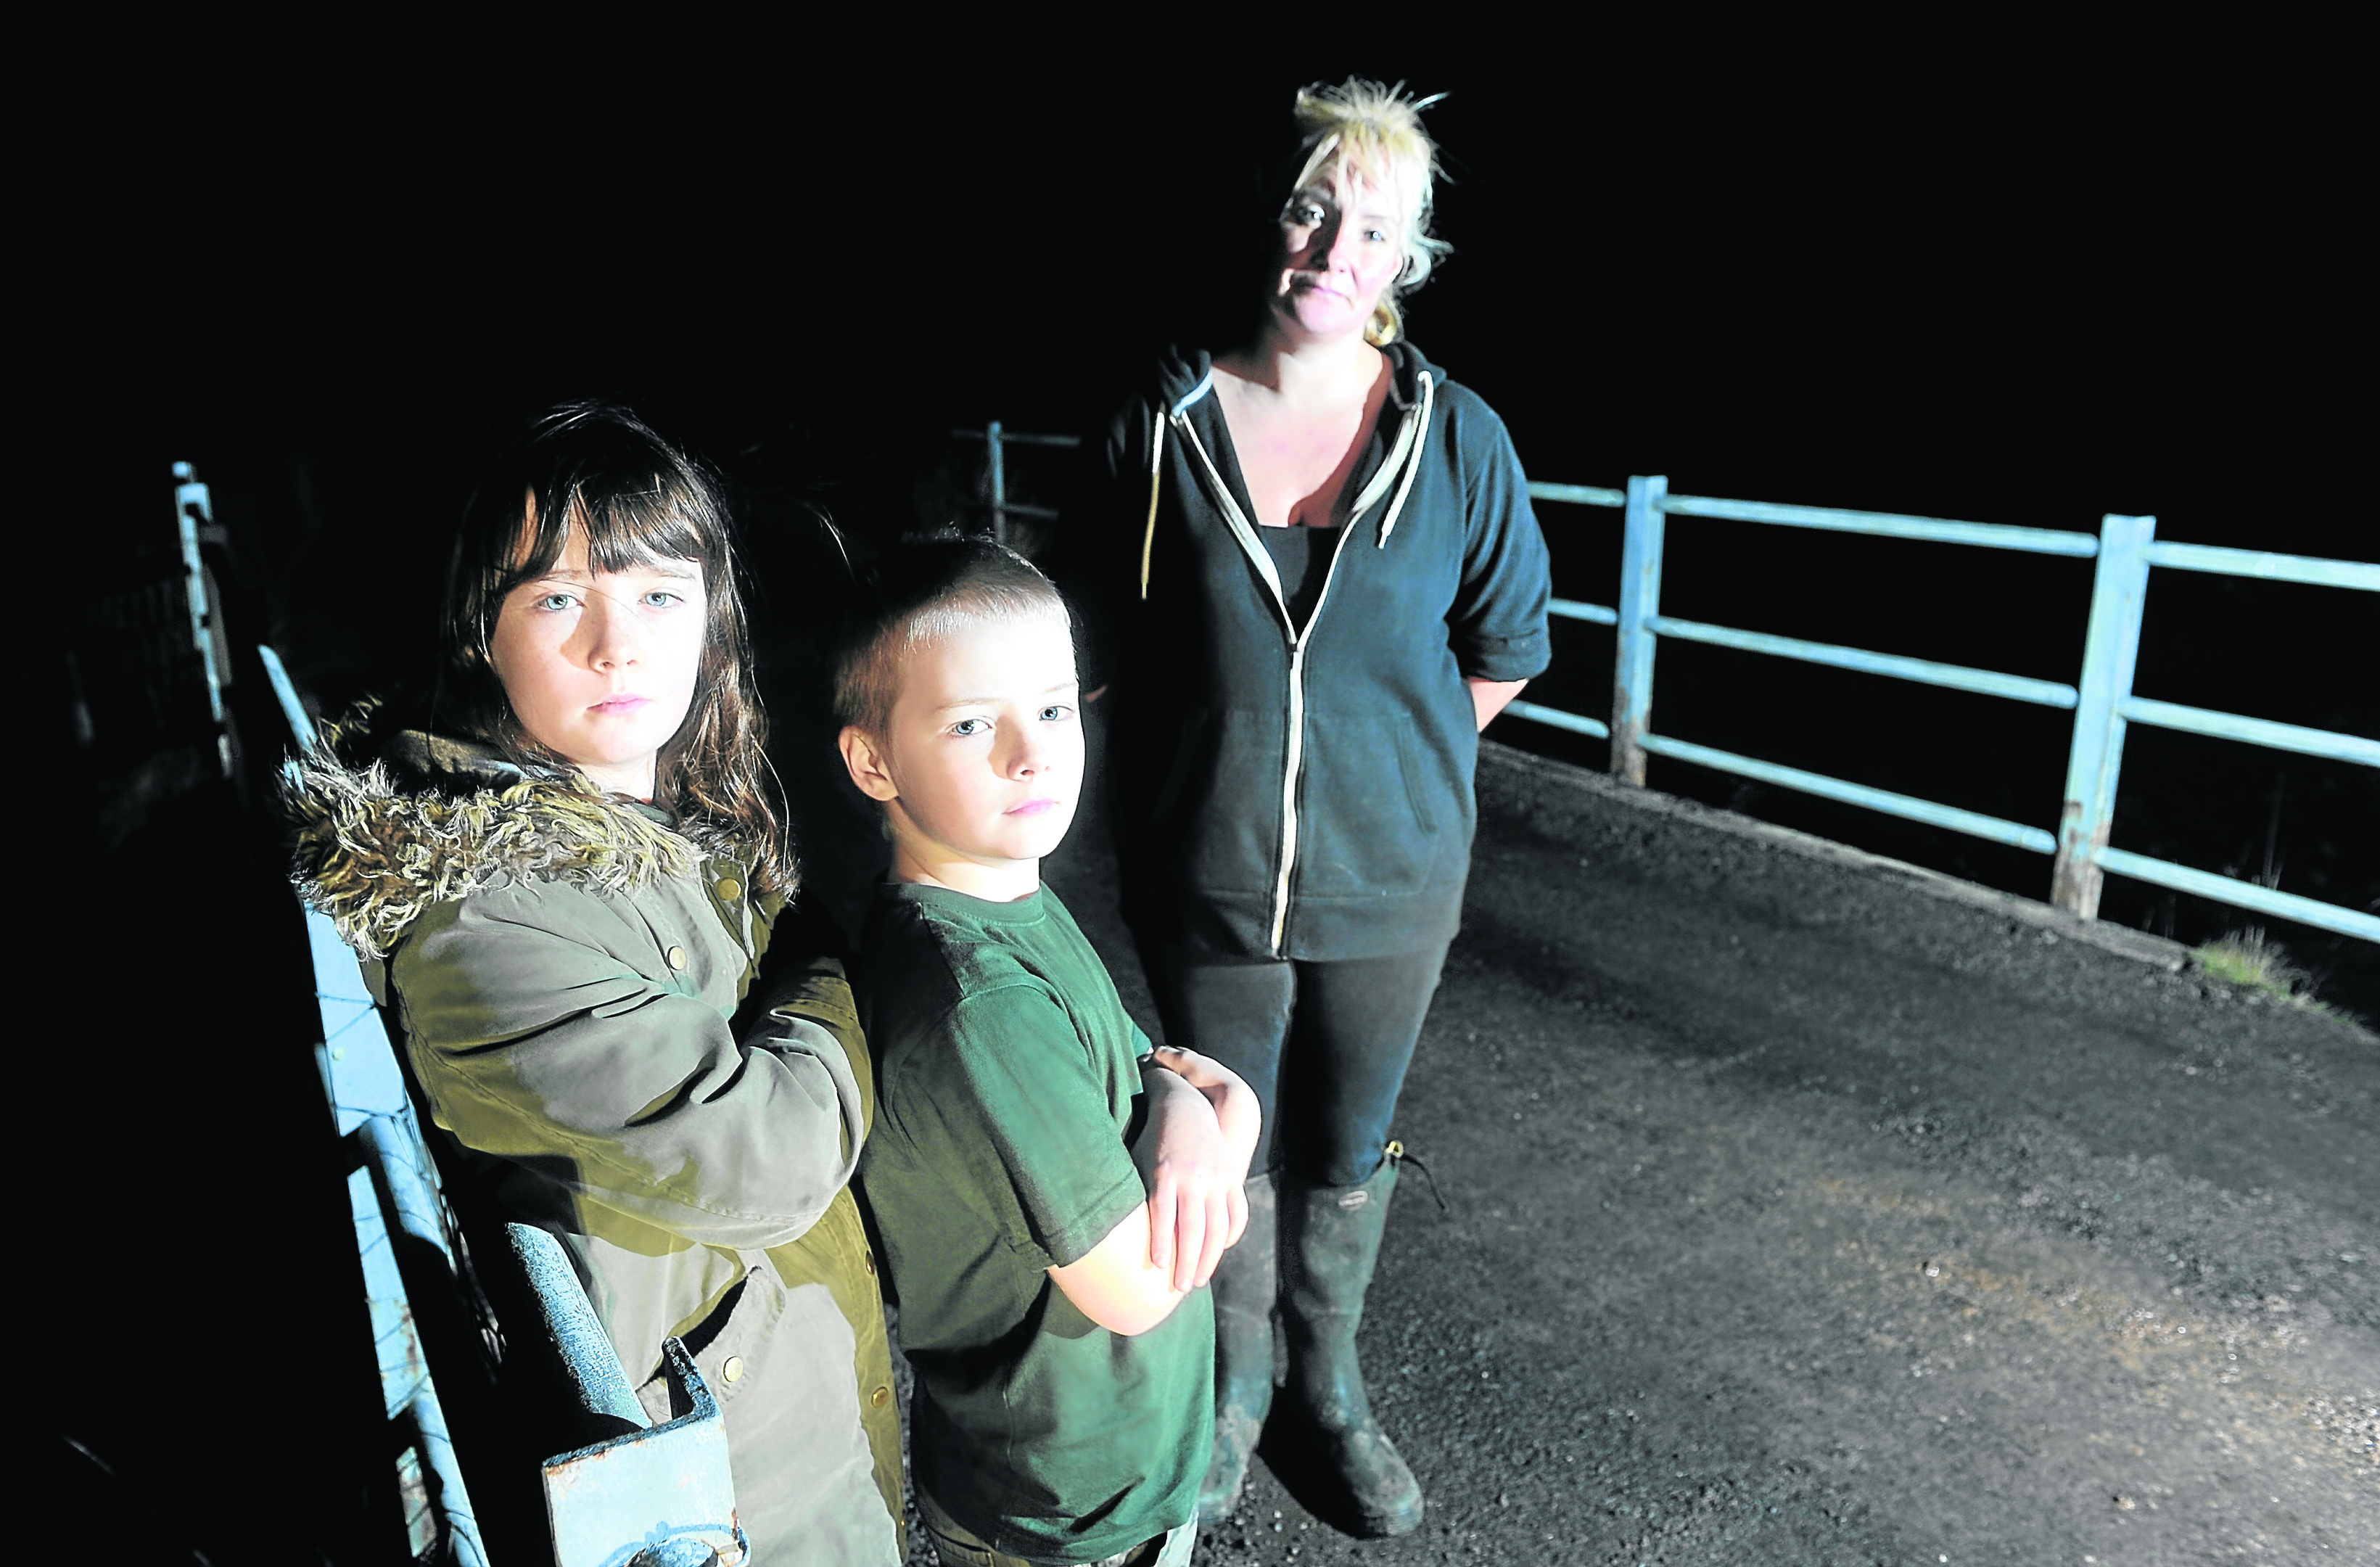 Jacqui McKinnon of Strathconon with her two children, Dreyden (9) and Deesha (10). Picture by Sandy McCook